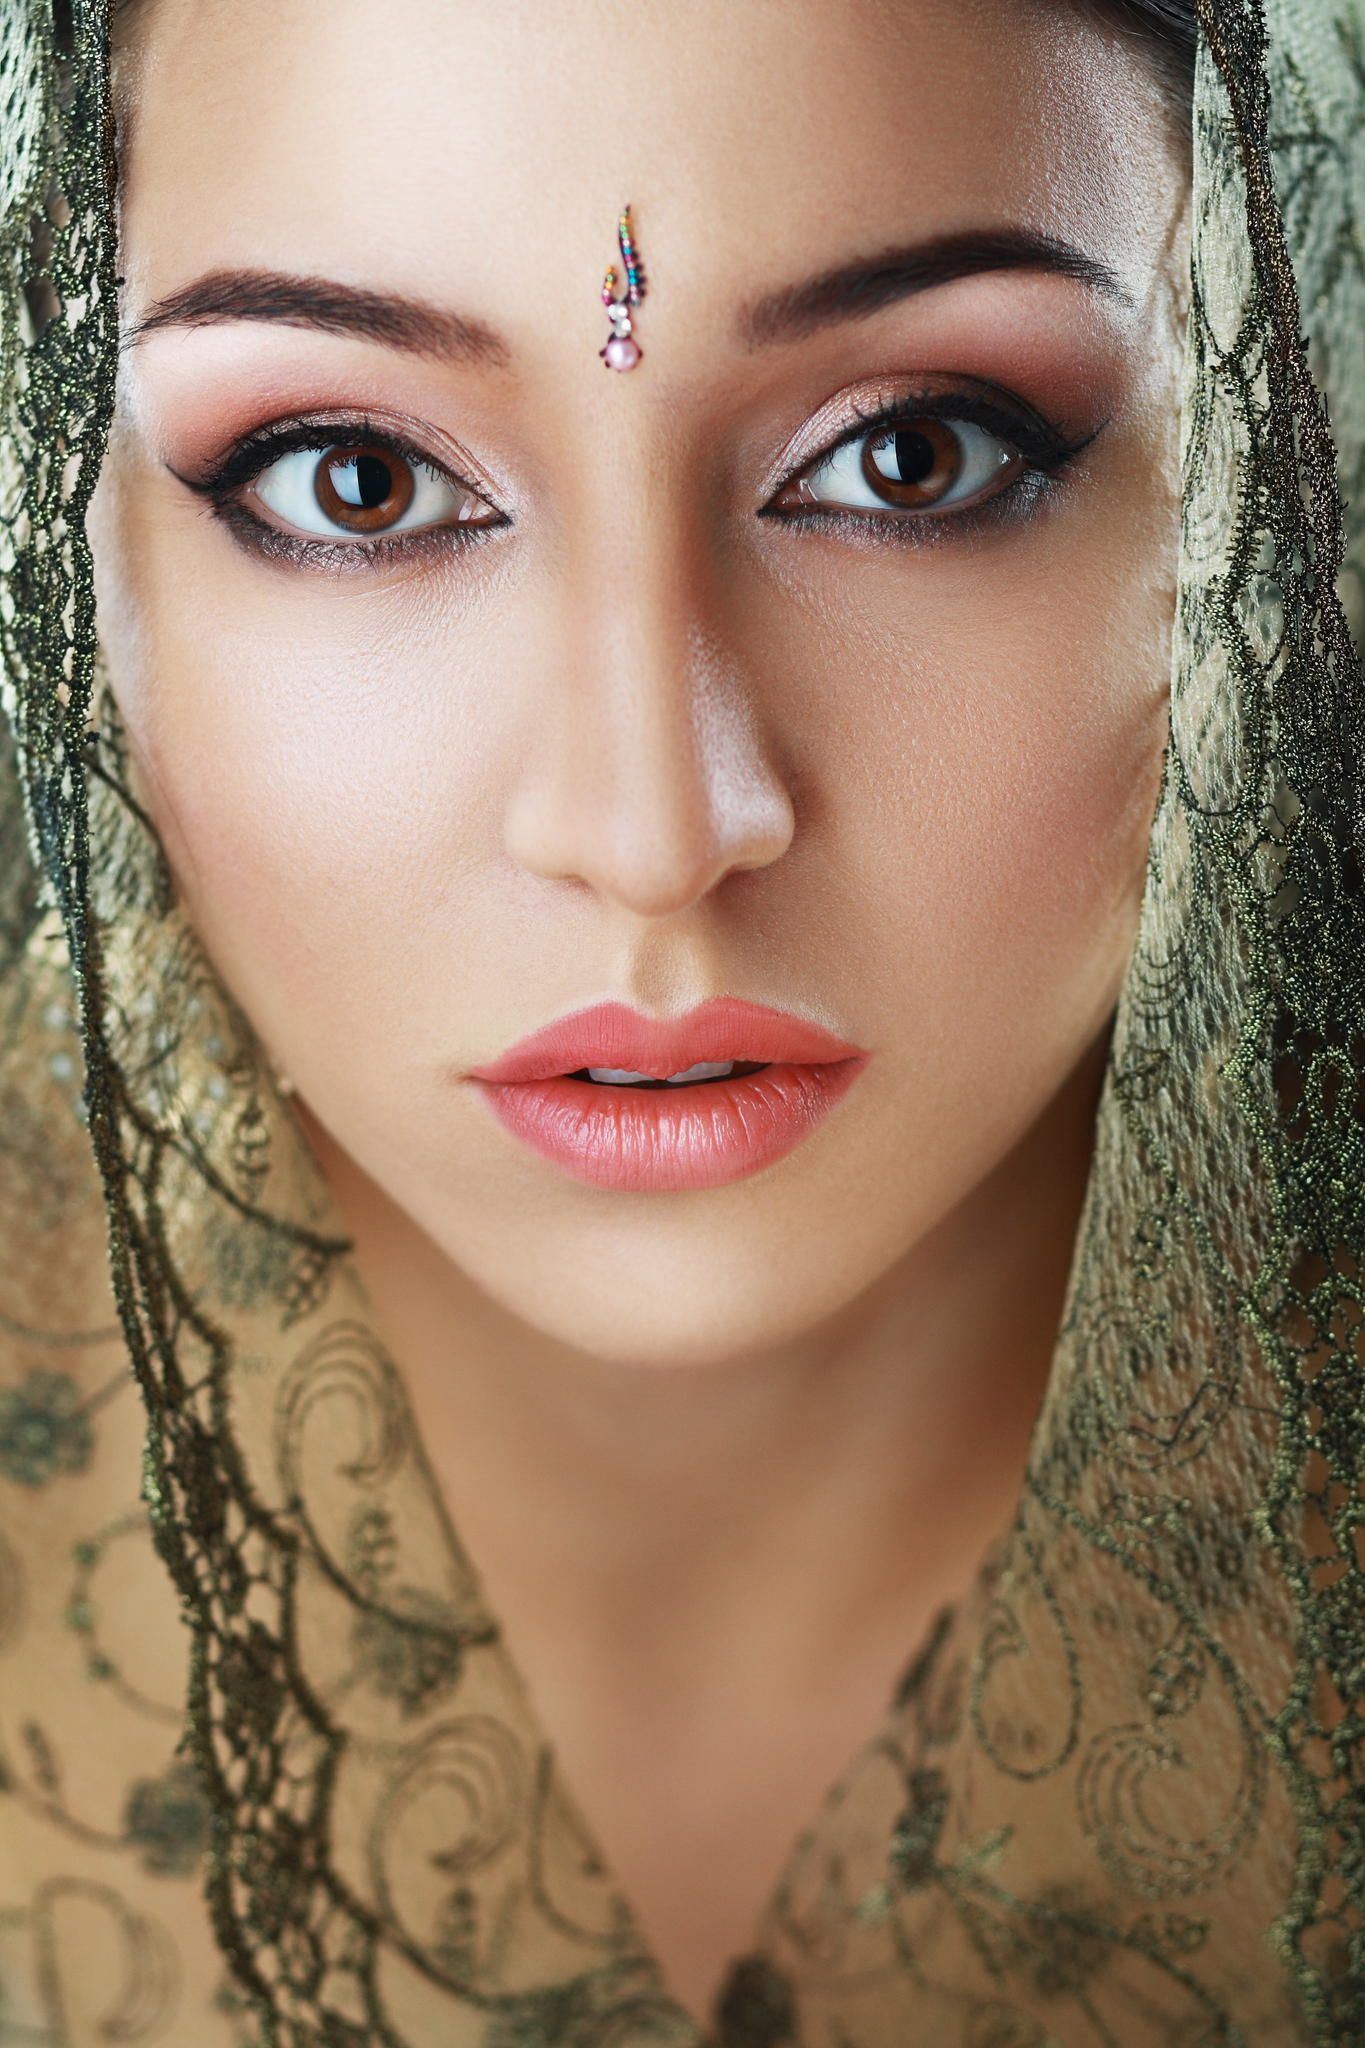 Indian beauty face close up perfect make up Series young beautiful